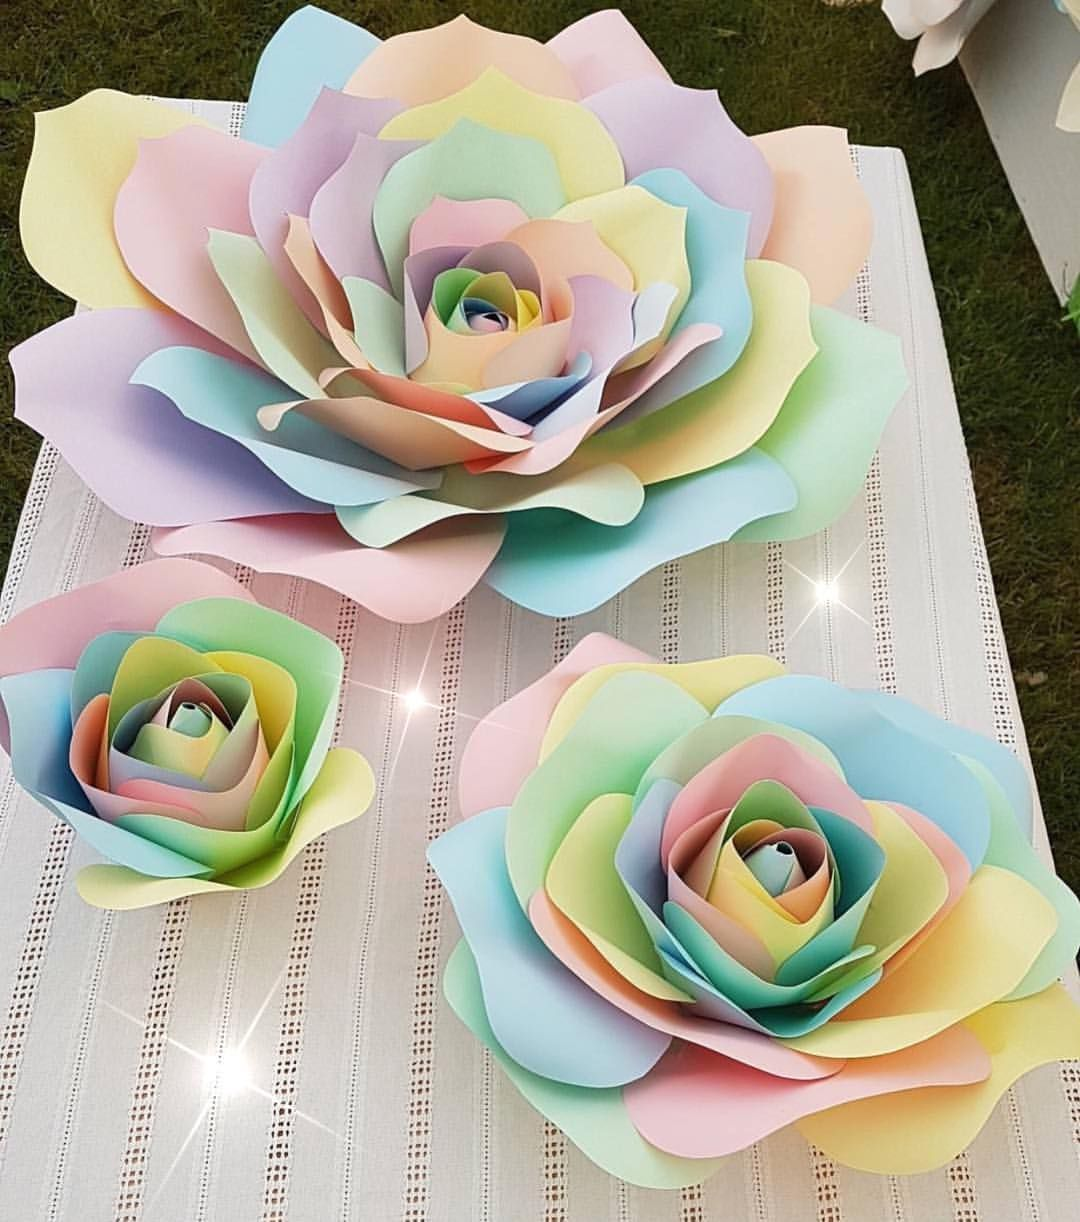 Pin by sandra lira on flores pinterest flowers unicorns and 3 sizes of my giant unicorn paper roses for sale large is wide medium small plus delivery large paper flowers mightylinksfo